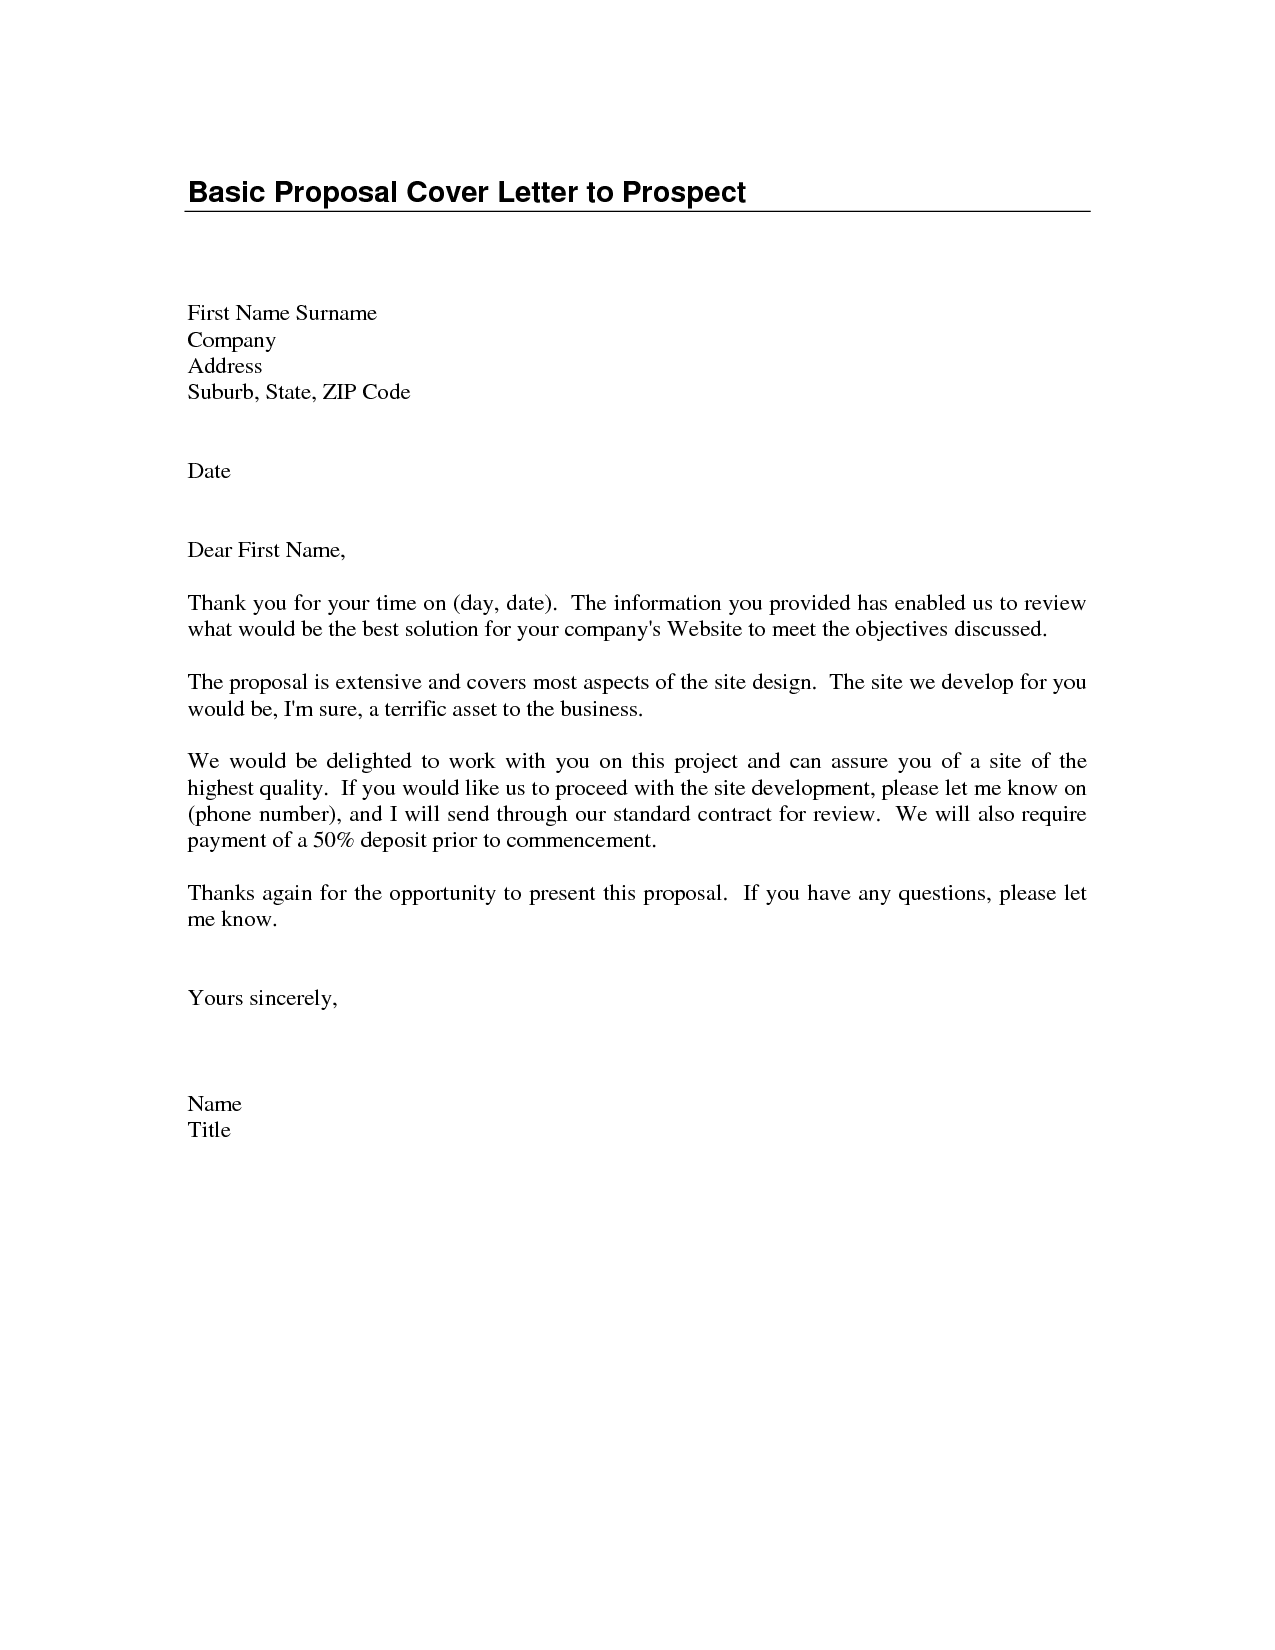 Basic Cover Letter Sample Letters Free BasicSimple Application